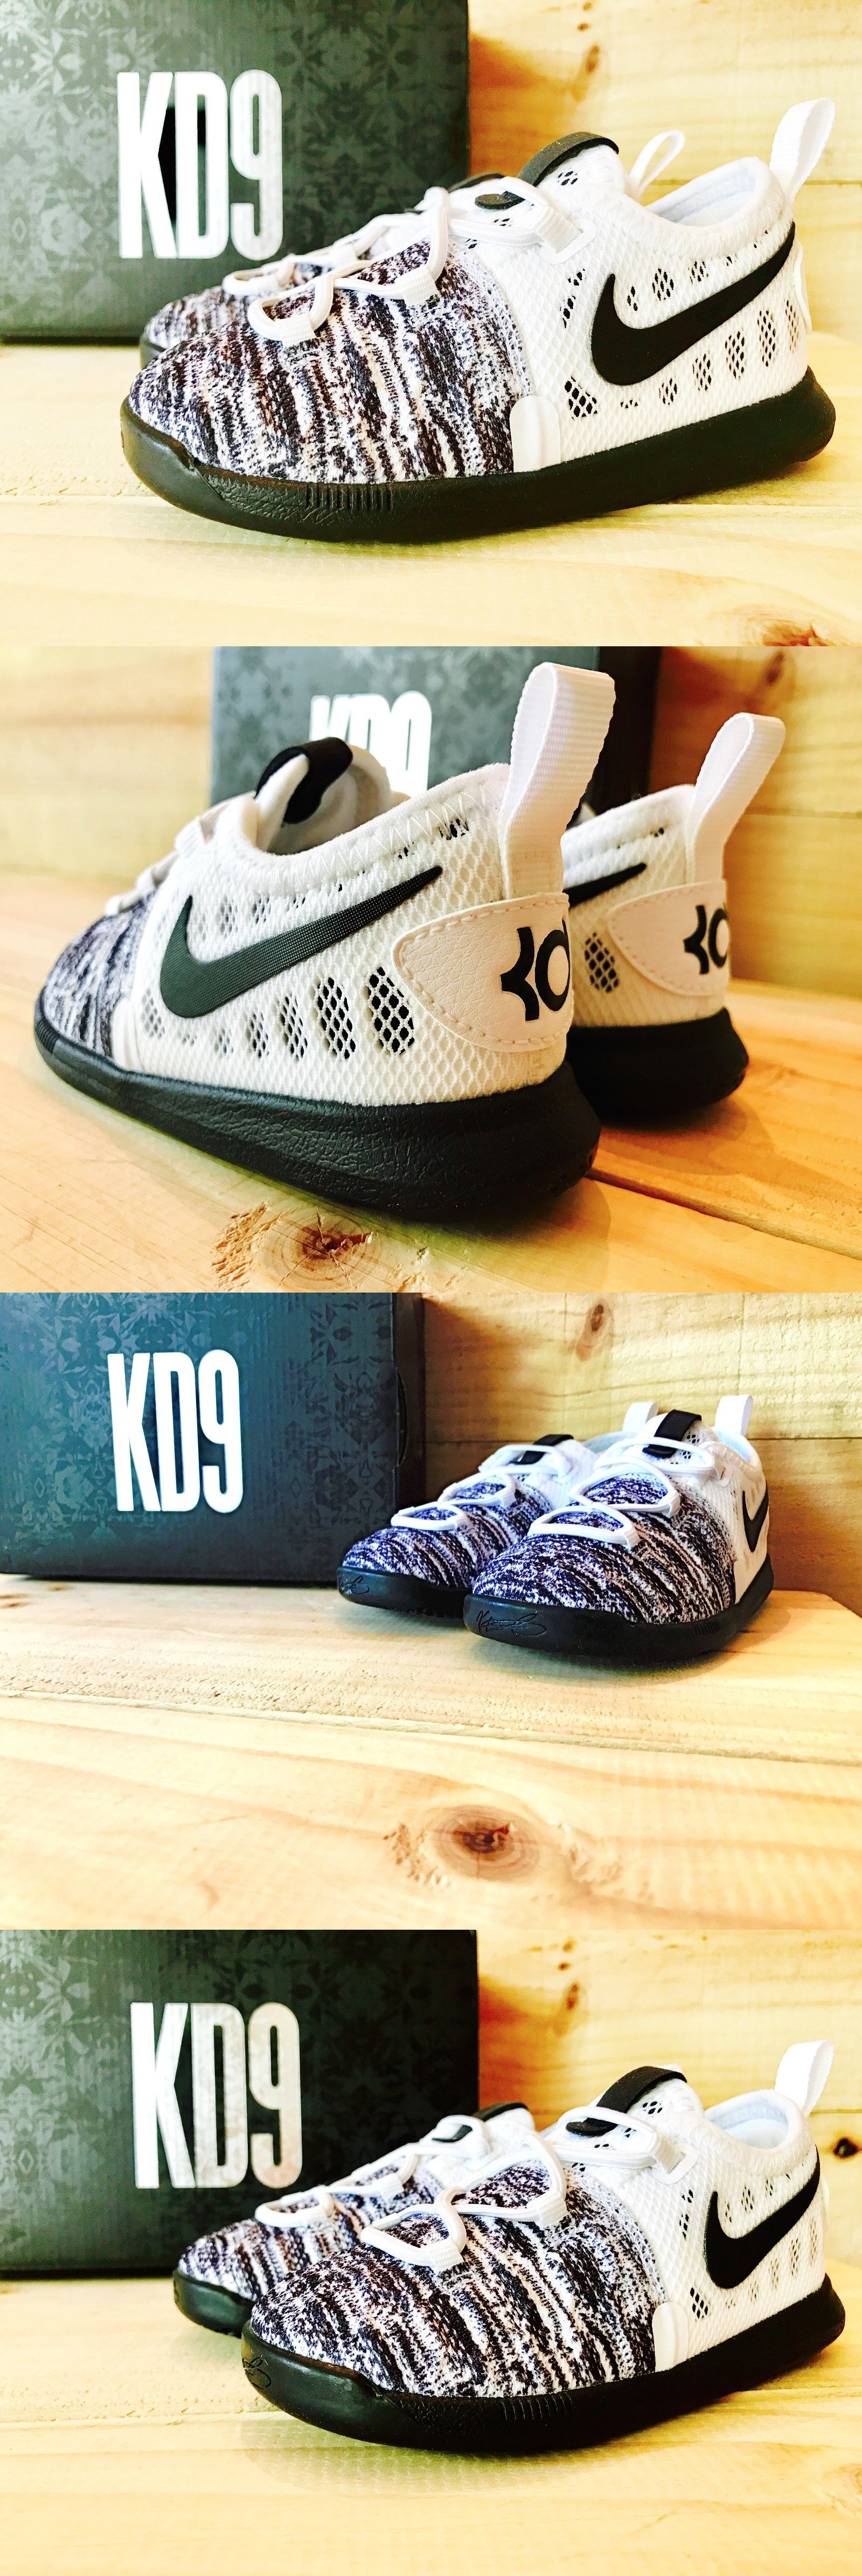 977d6868e88 ... release date baby shoes 147285 nike kd 9 oreo flyknit durant black  white toddler boys kids